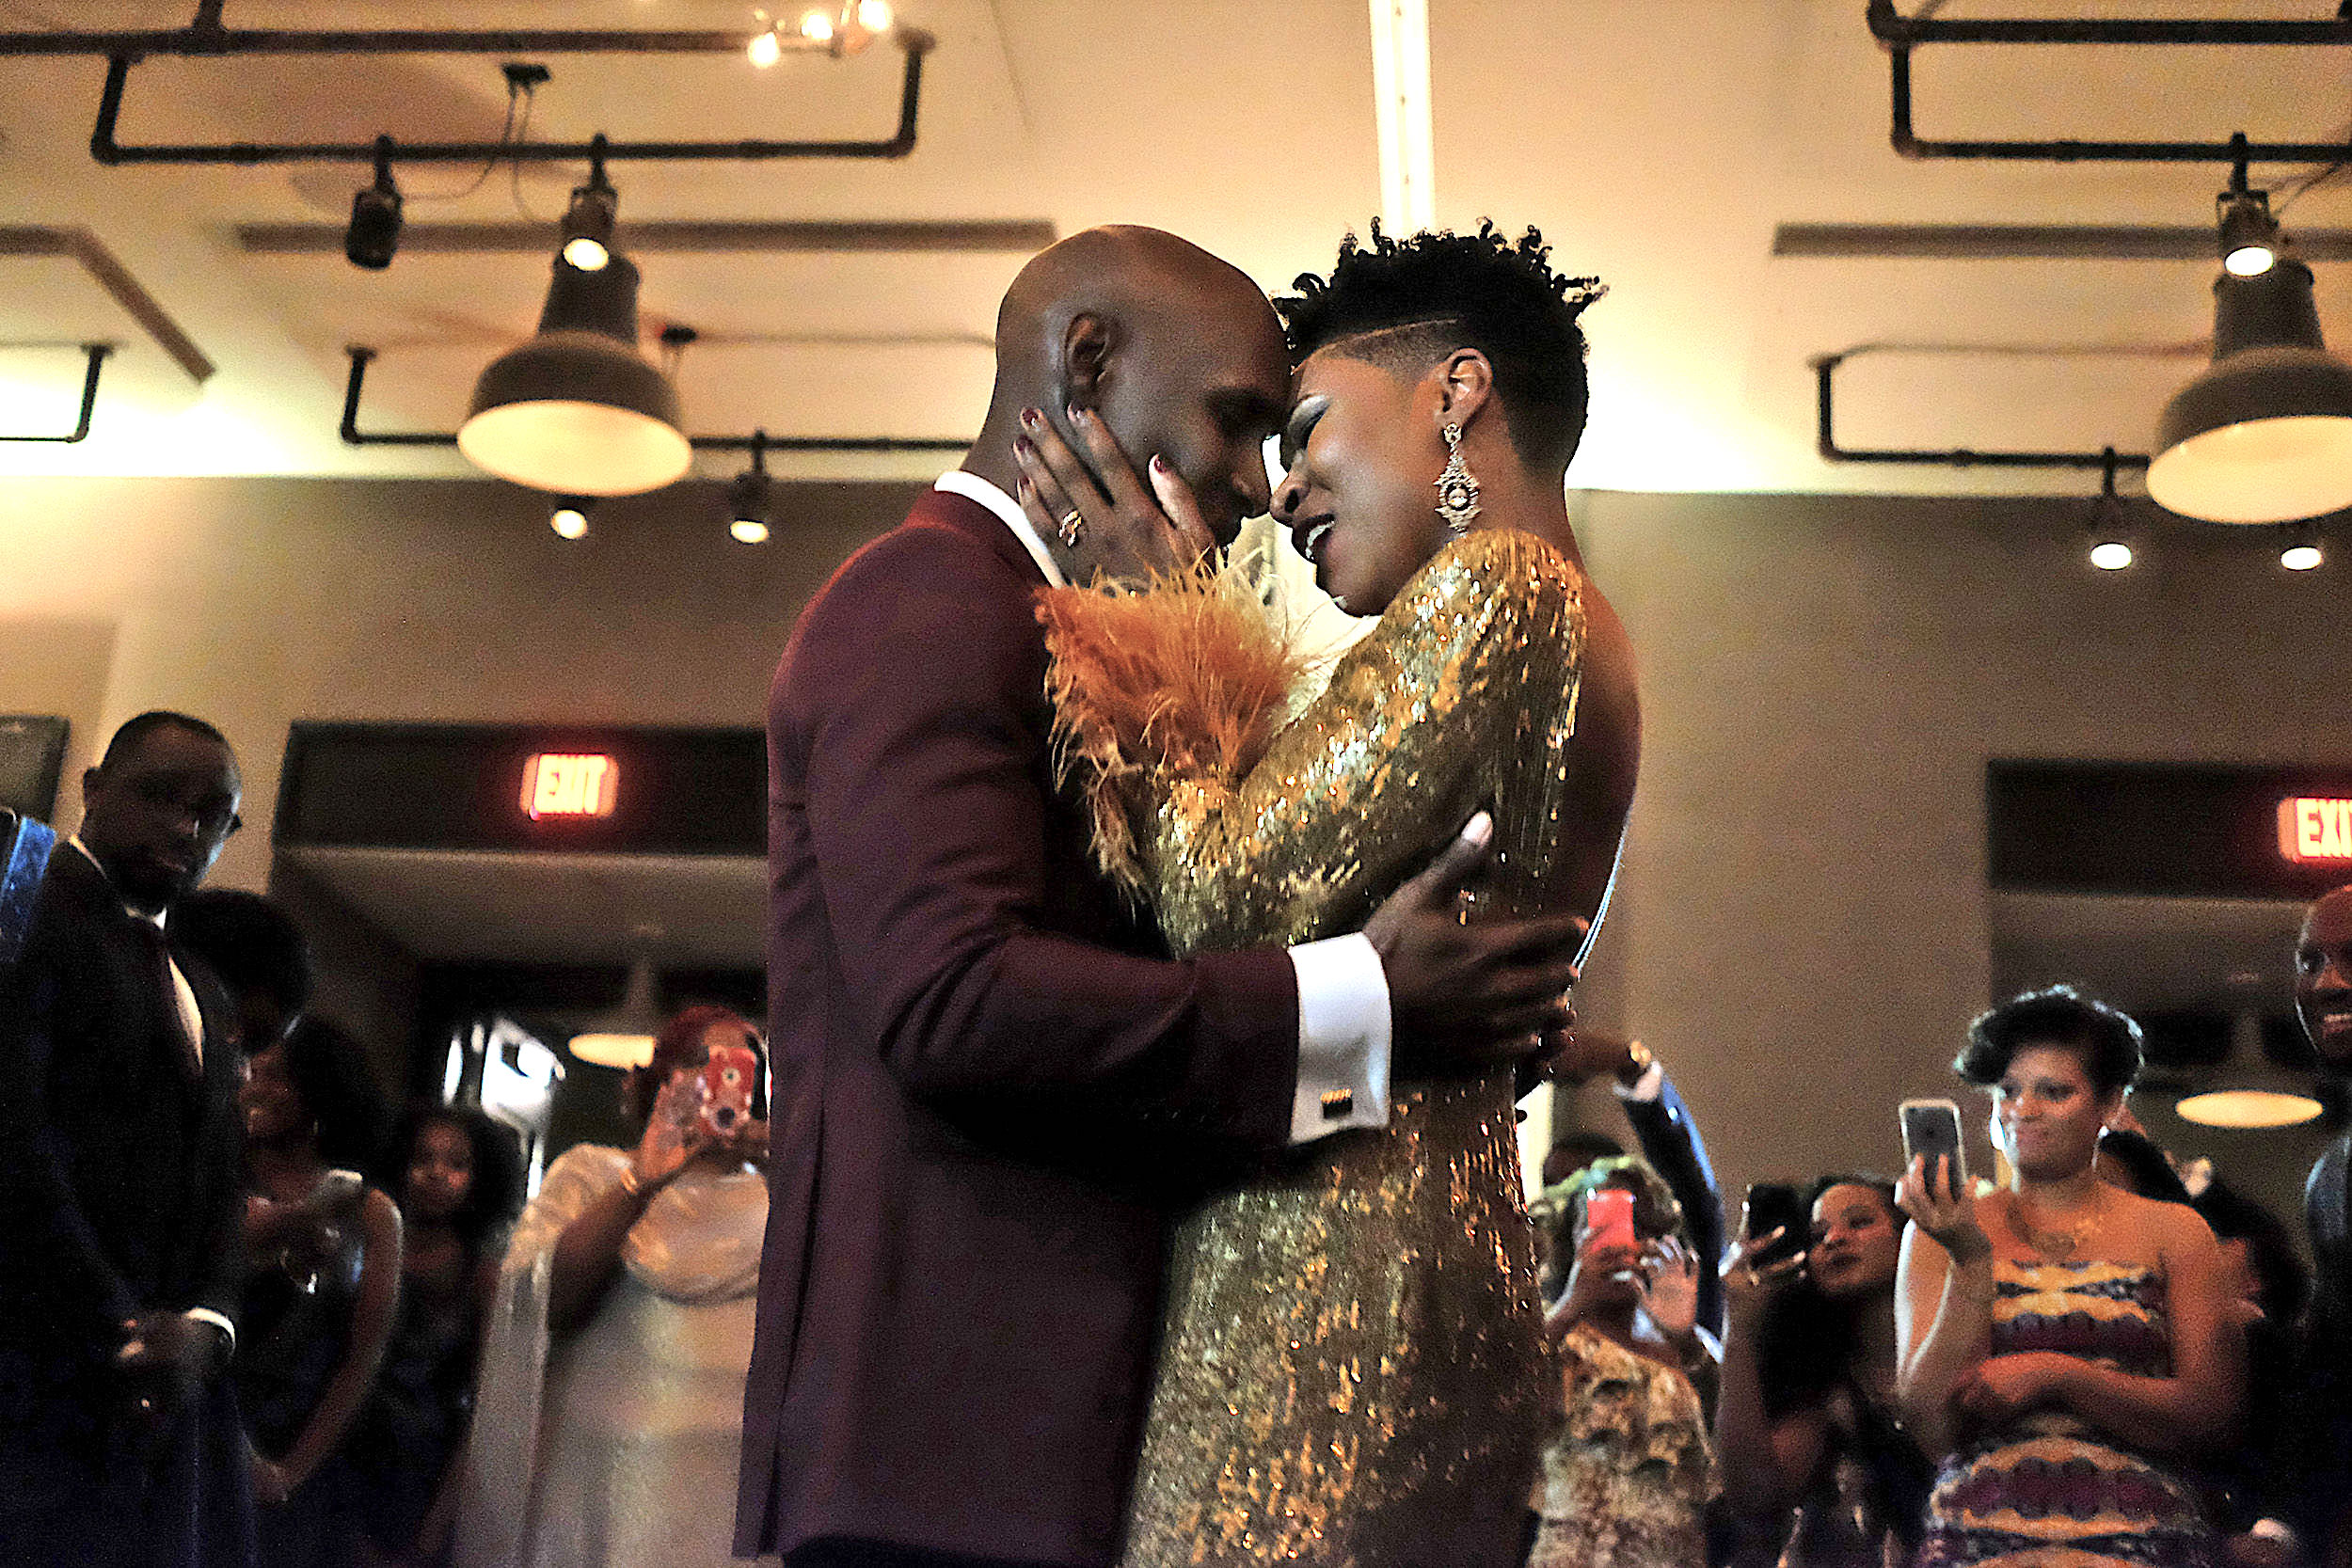 Tony Oluwatoyin Lawson, Shantrelle P. Lewis, William + James, Shoppe Black, Dandy Lion, African Fashion, Blackest Wedding, KOLUMN Magazine, KOLUMN